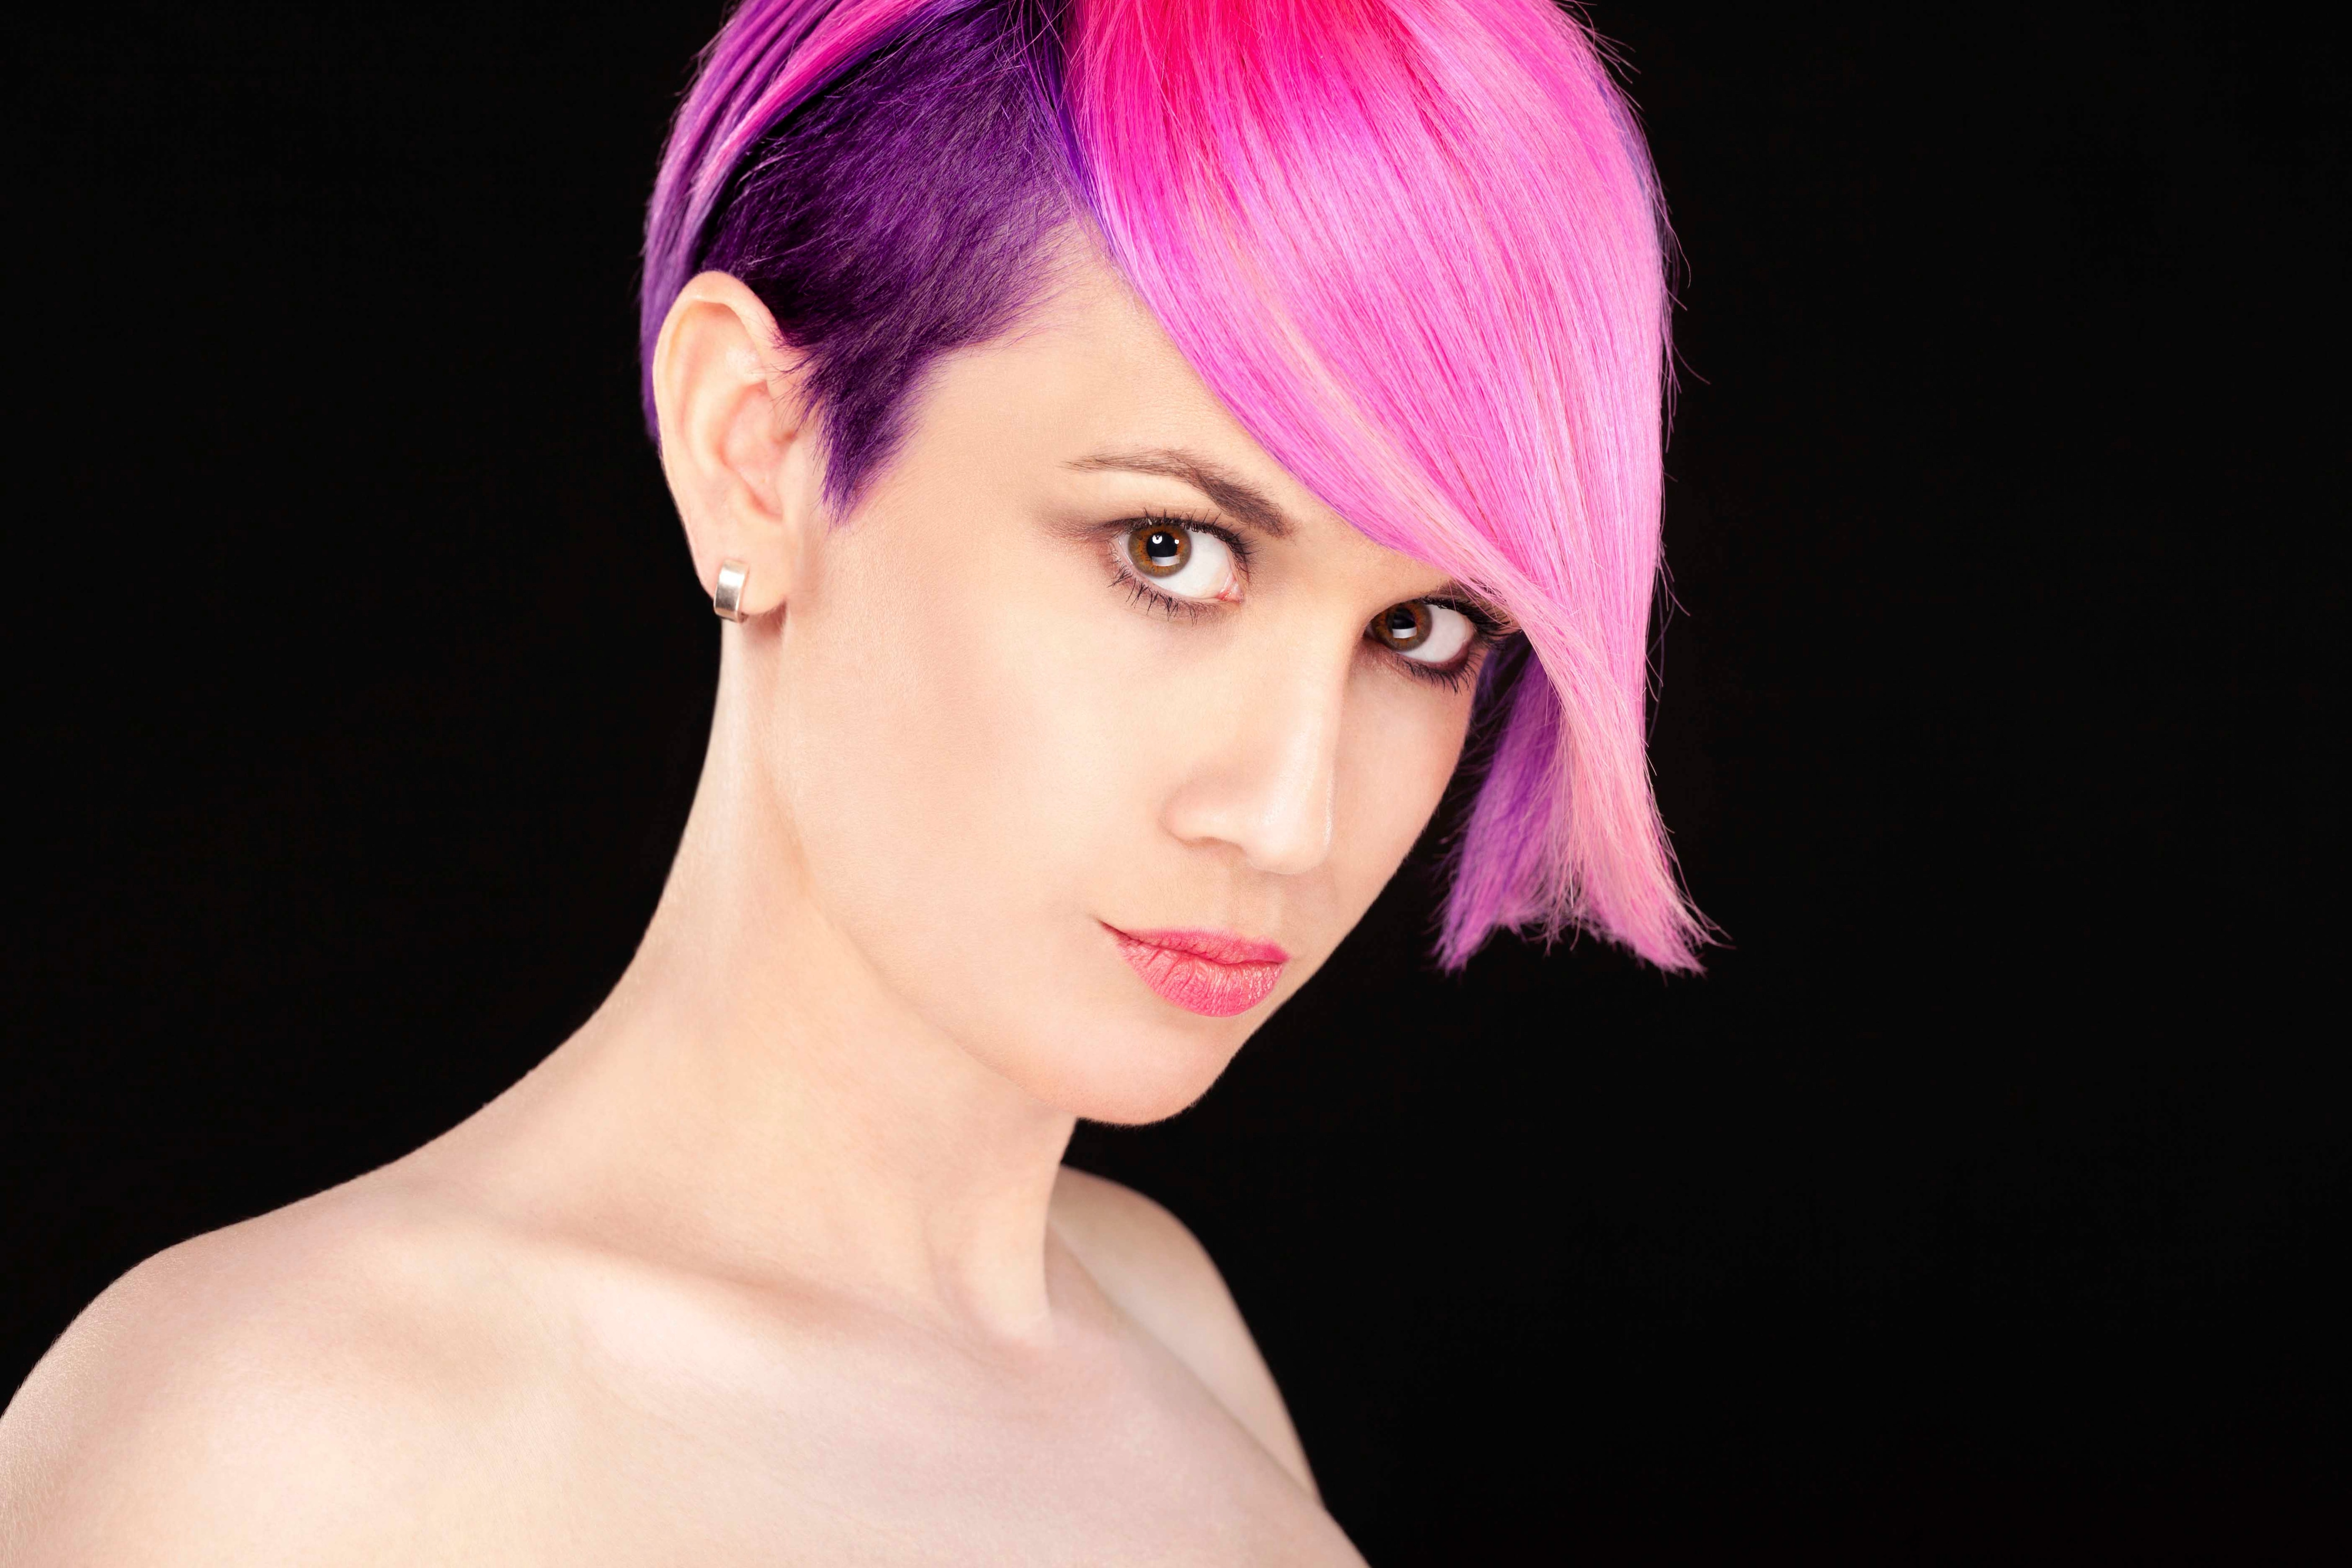 woman with pink hair wearing one of the stylish half shaved hairstyles.